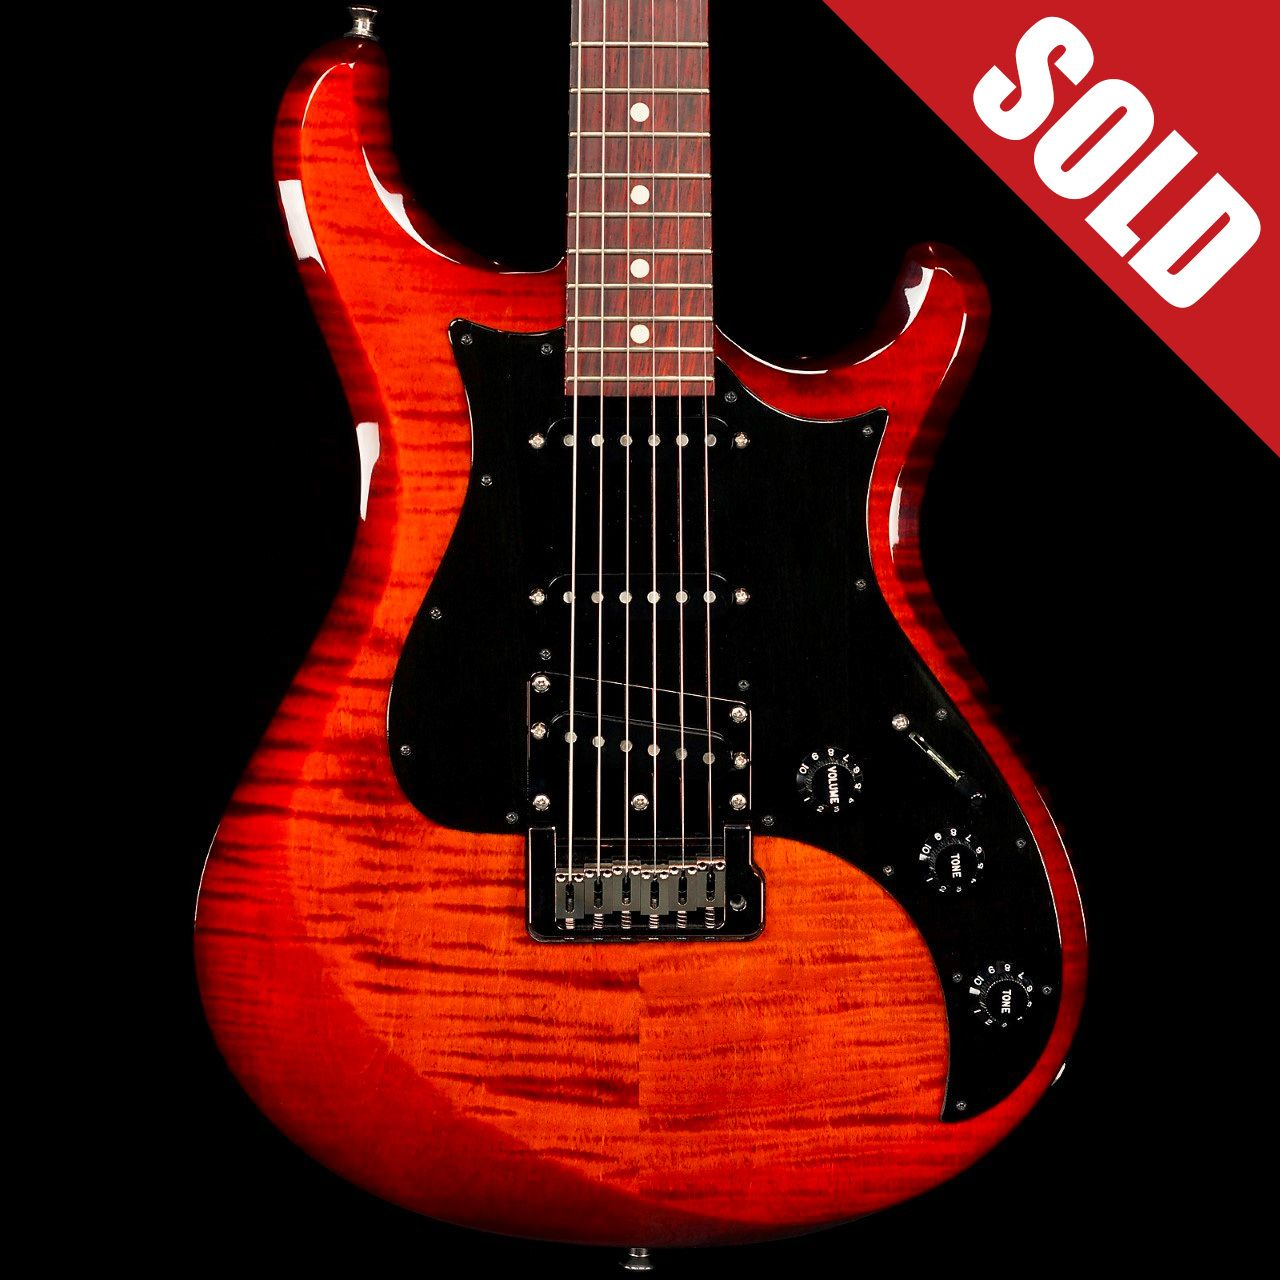 Knaggs Severn T3 Fire Sold Guitar Playing Guitar Red Electric Guitar